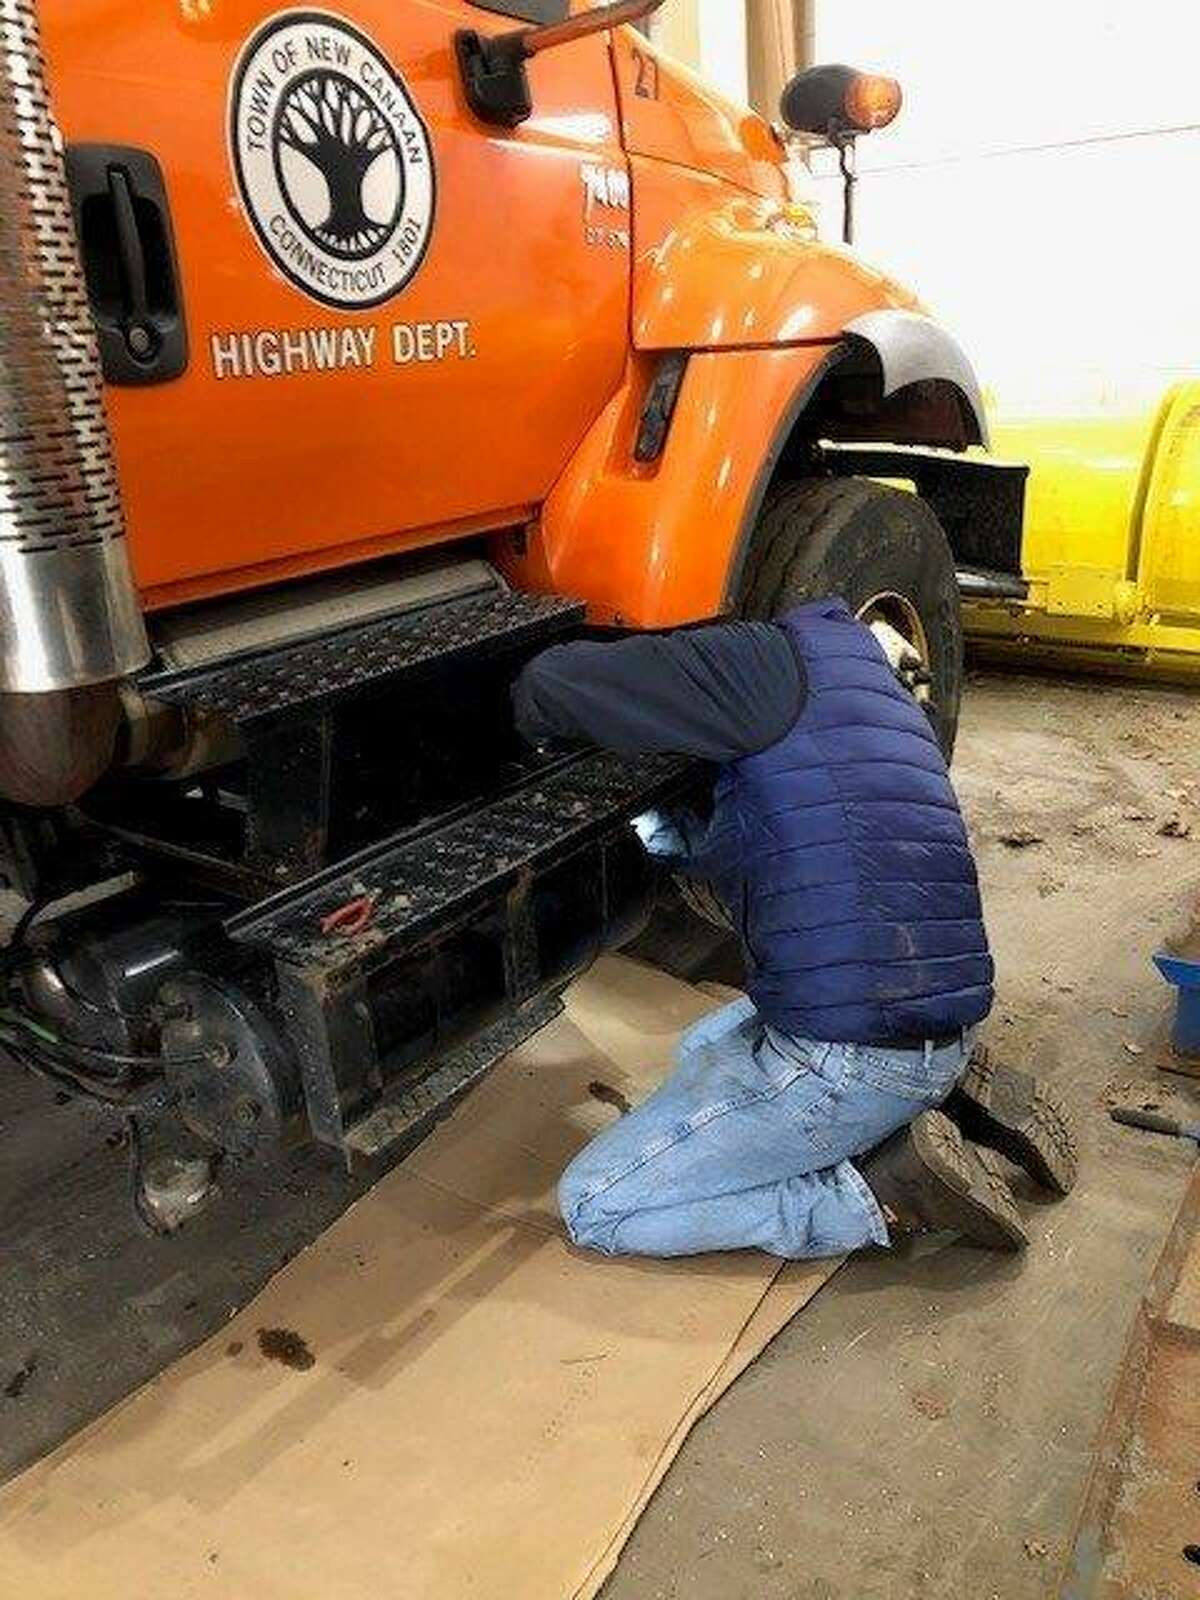 Neal Coppolla prepares a New Canaan Public Works truck to respond to a Noreaster expected to dump heavy snow on New Canaan and the region Wednesday into Thursday.